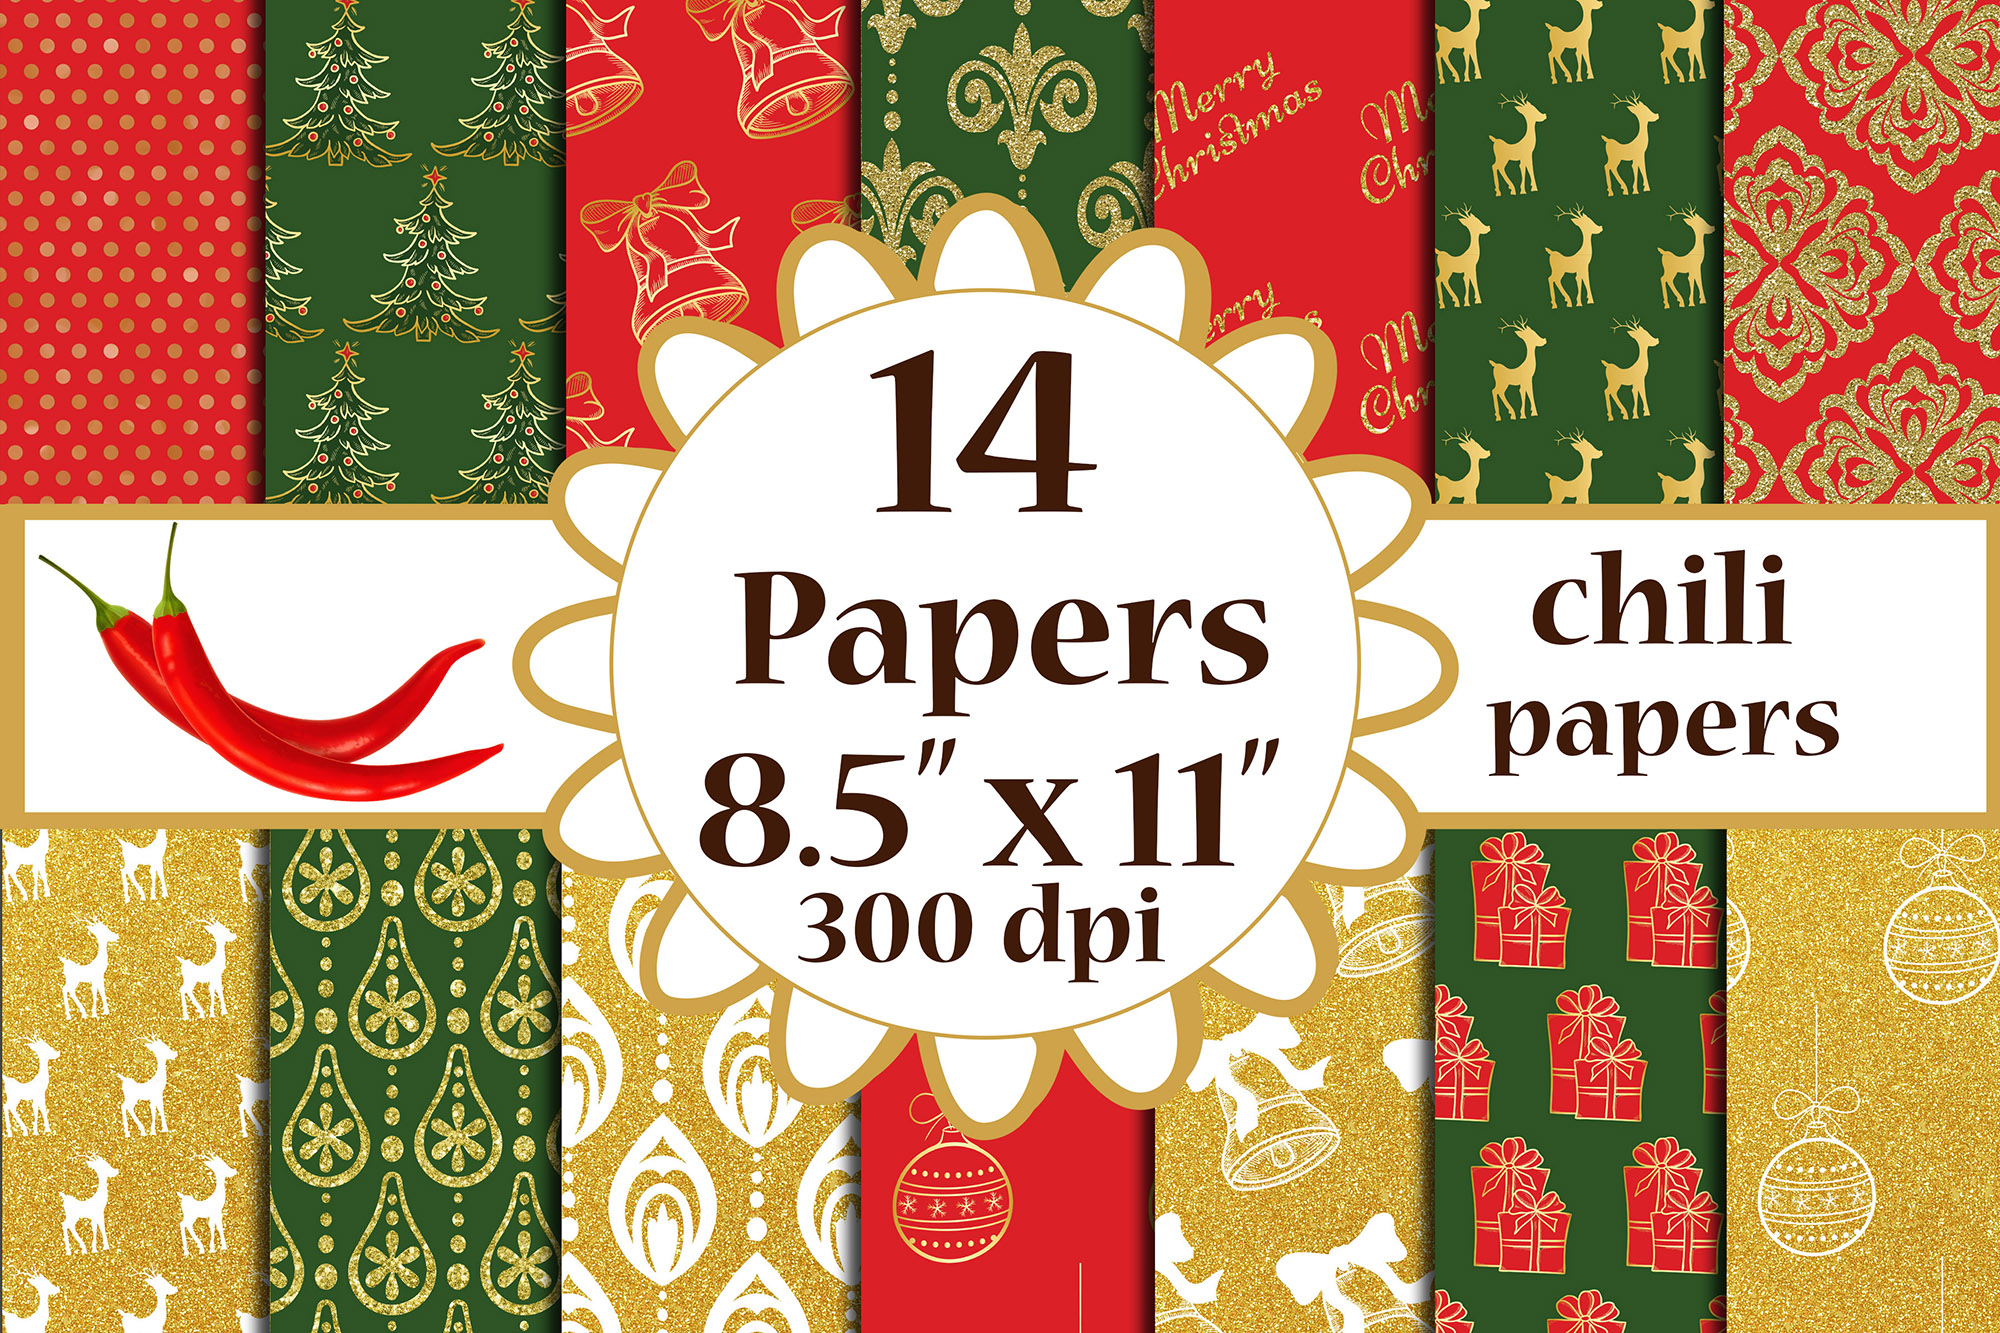 Download Free Christmas Digital Papers A4 Papers Graphic By Chilipapers for Cricut Explore, Silhouette and other cutting machines.